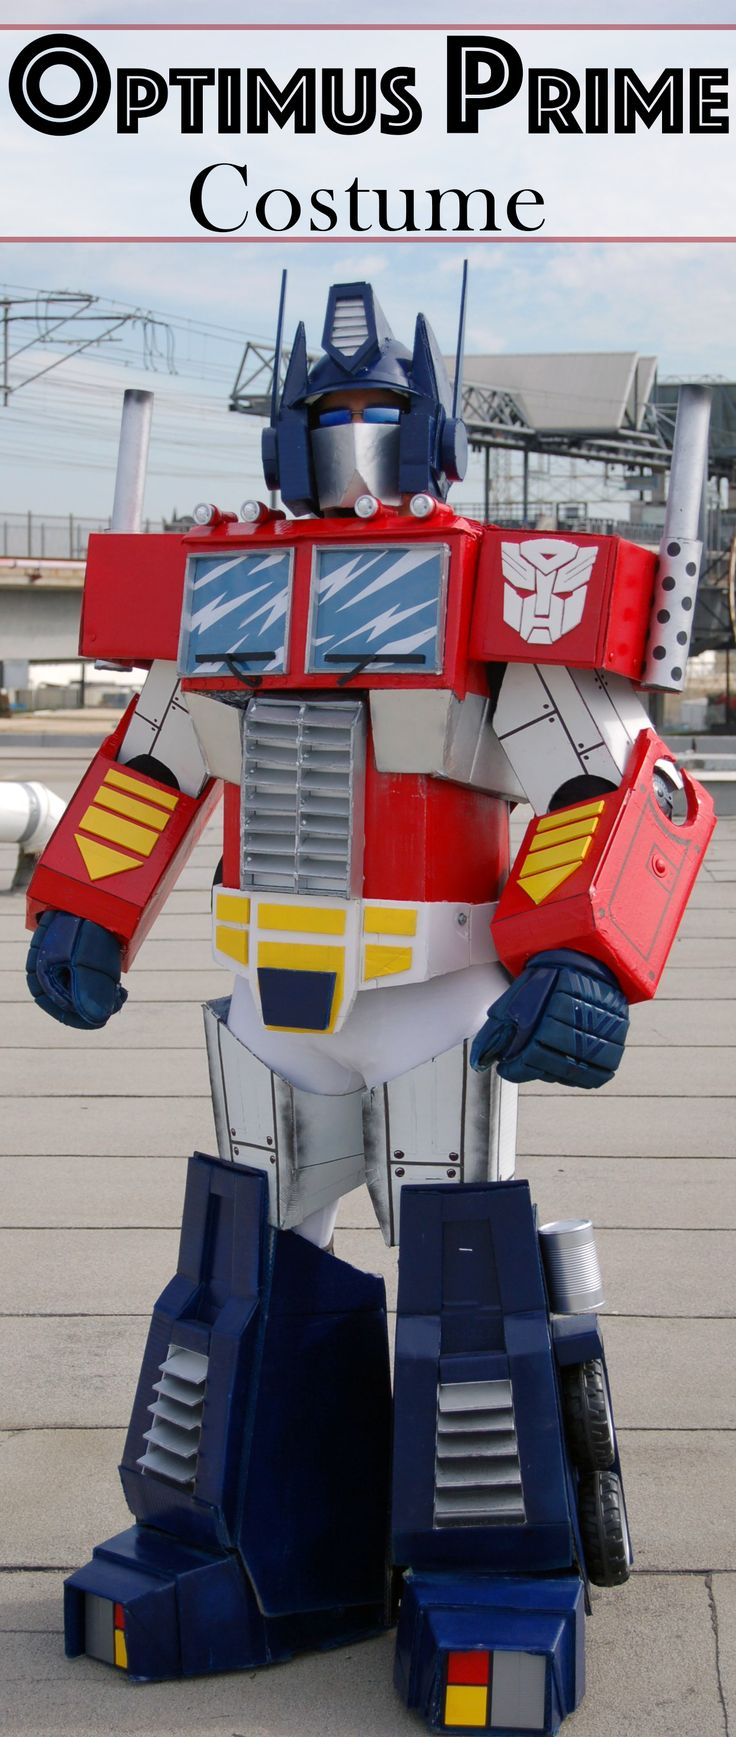 Best 20+ Transformer costume ideas on Pinterest | Optimus prime ...